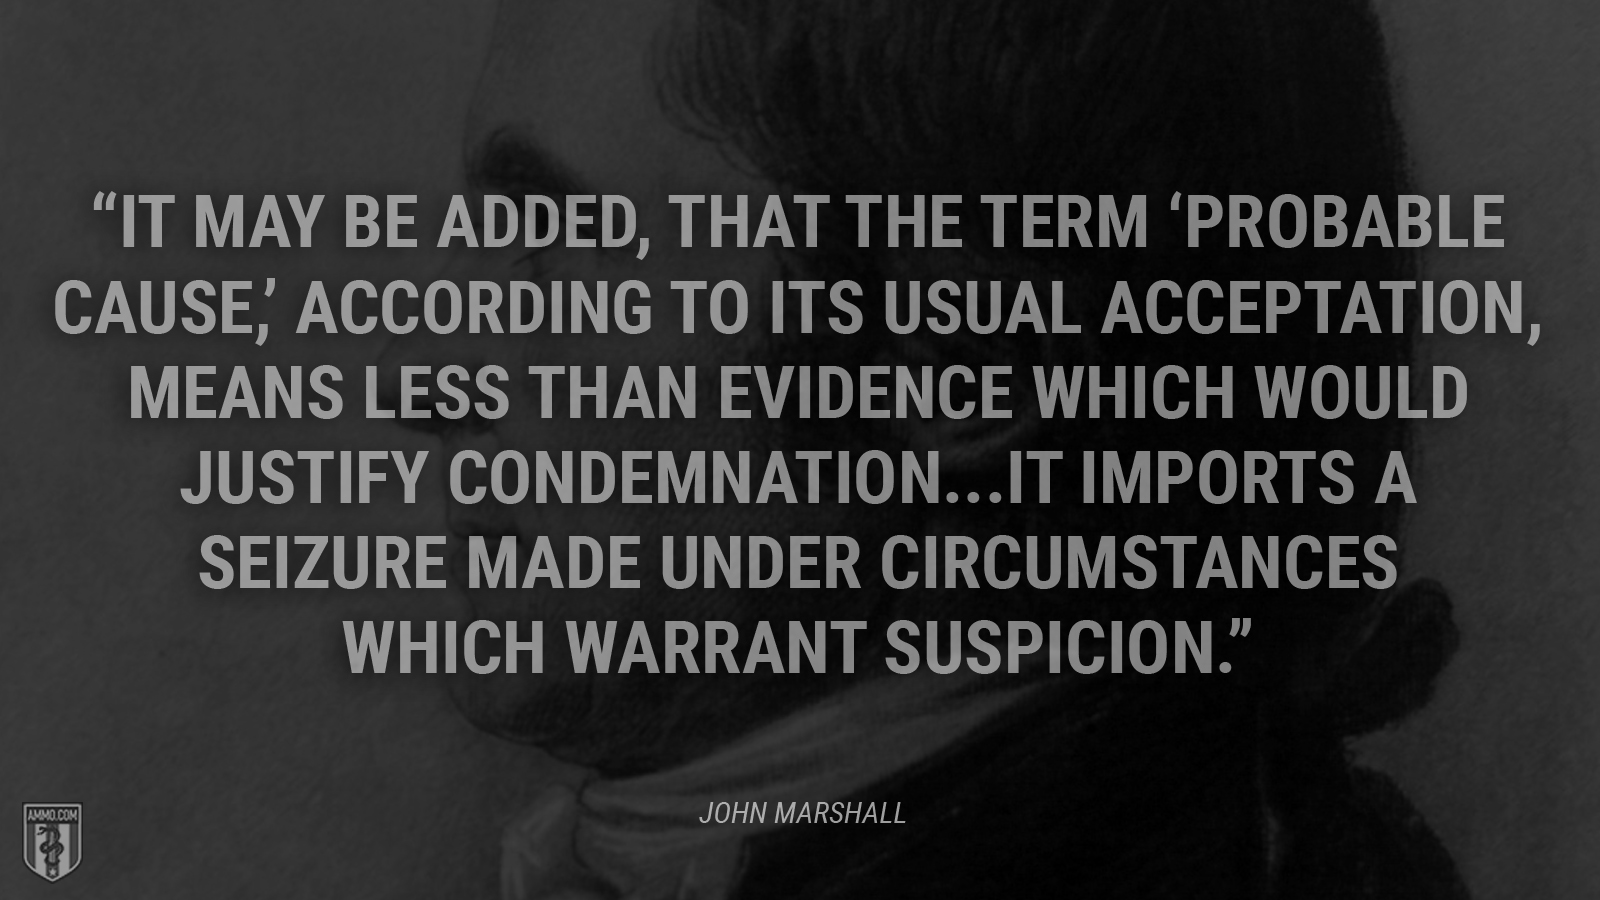 """It may be added, that the term ""probable cause,"" according to its usual acceptation, means less than evidence which would justify condemnation...It imports a seizure made under circumstances which warrant suspicion."" - John Marshall"